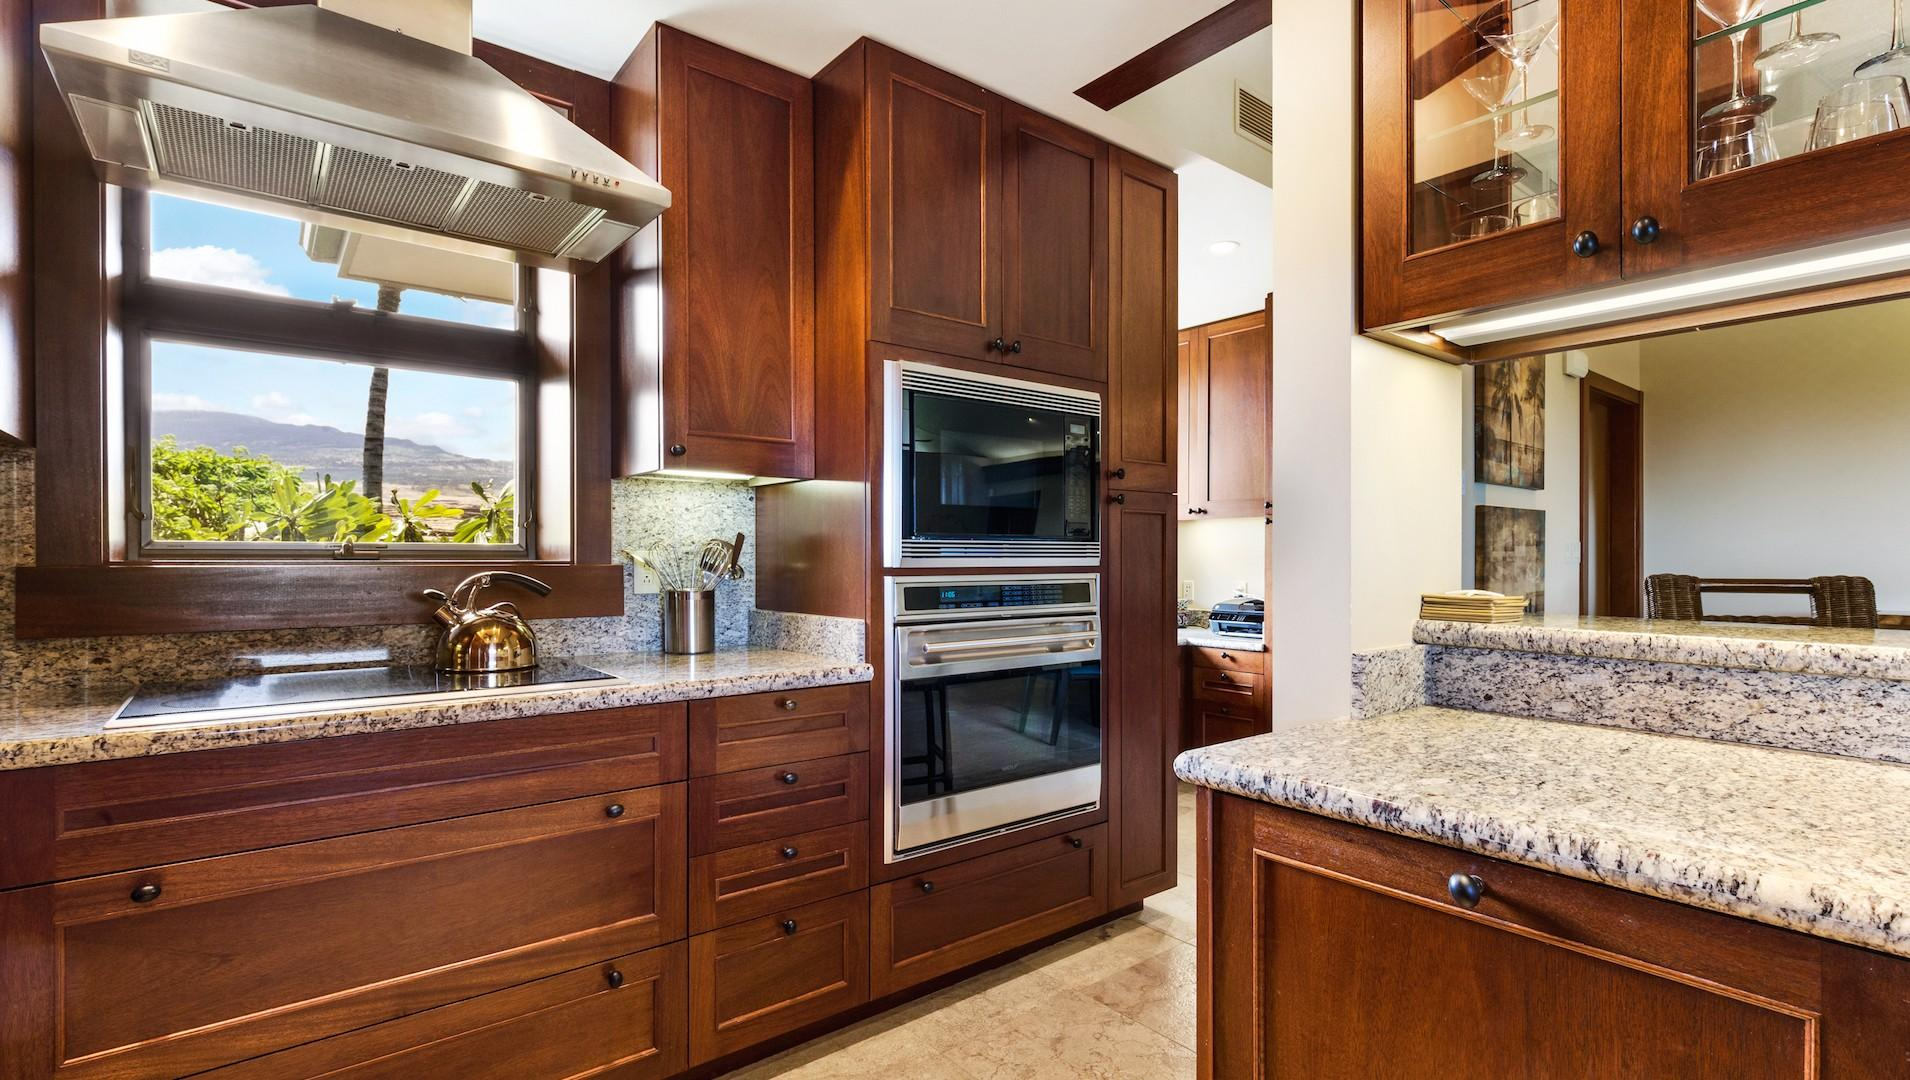 Kitchen with high-quality appliances.